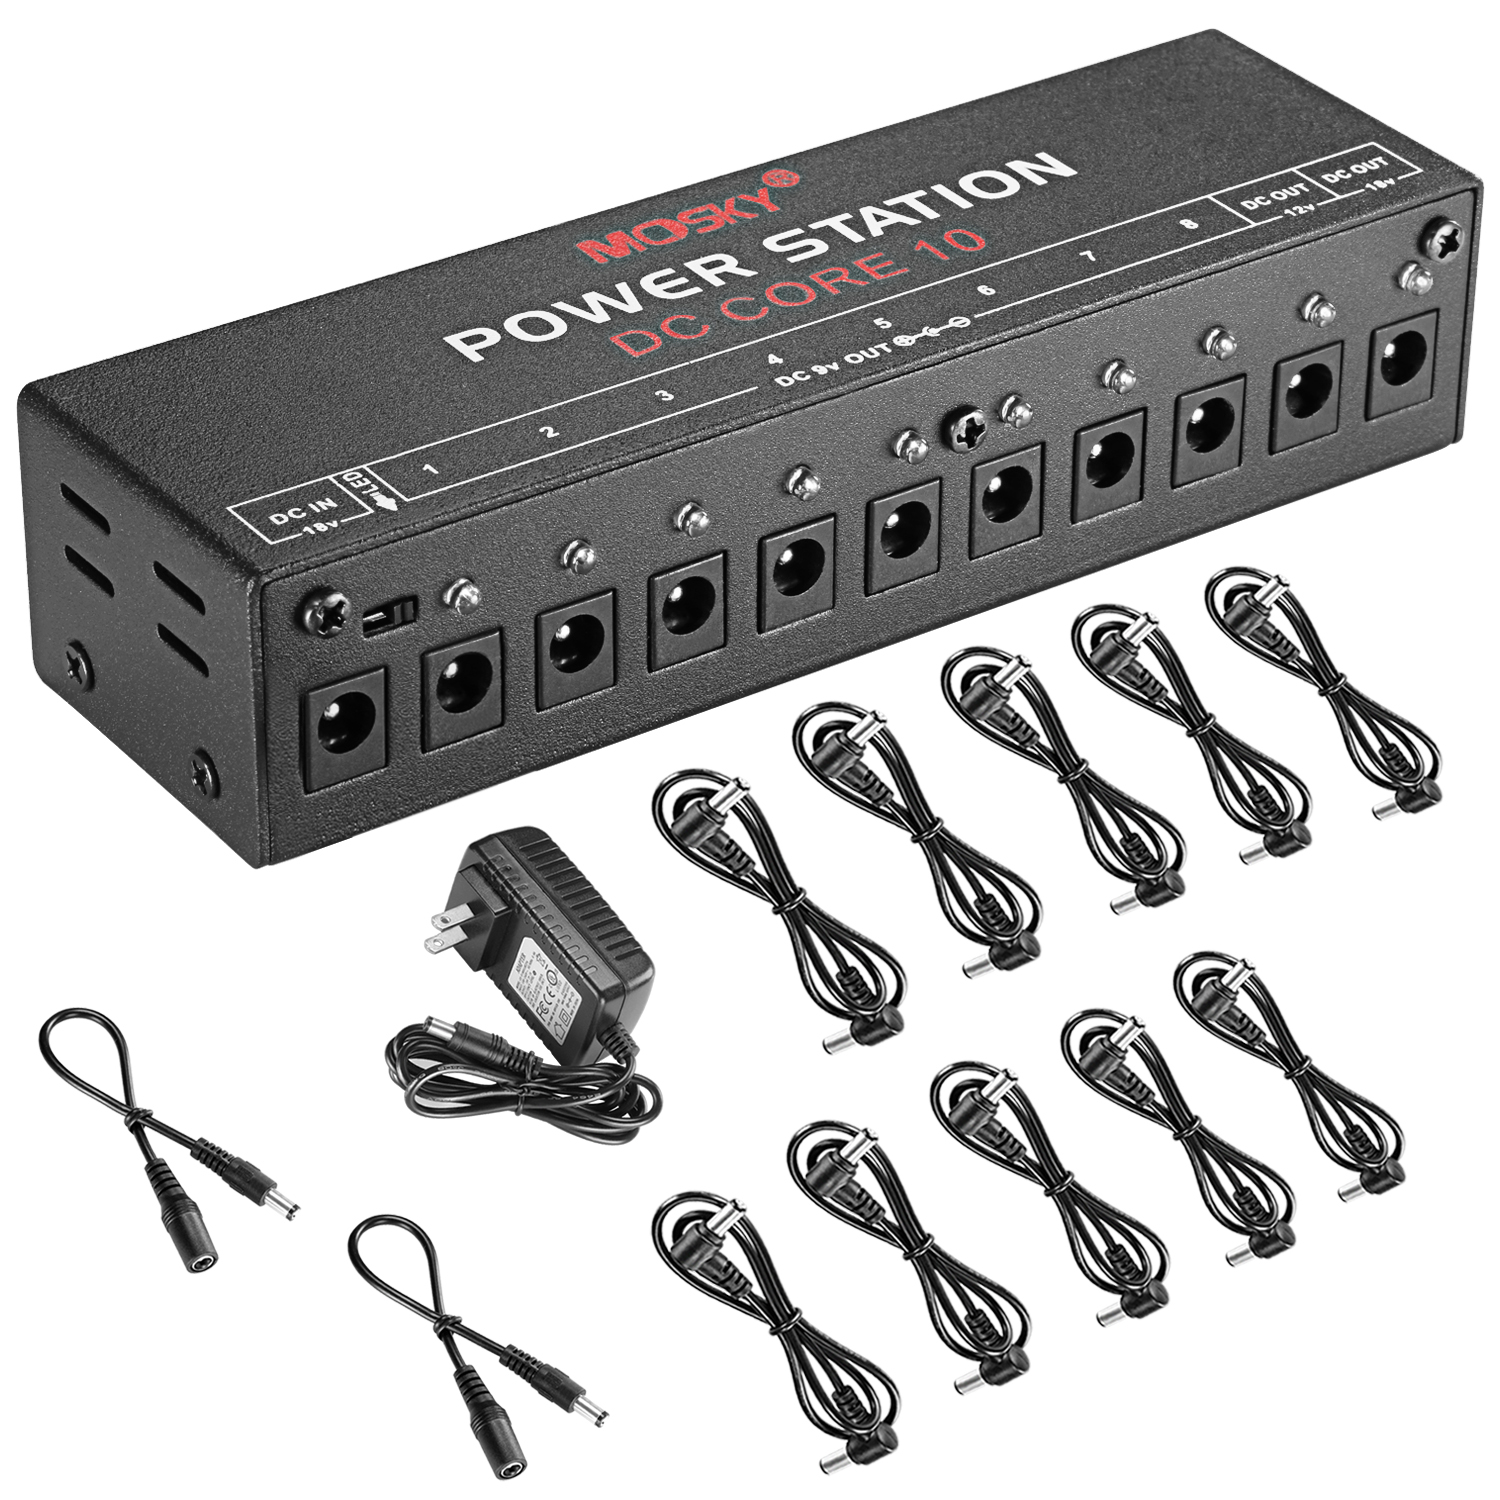 Mini Guitar Effect Pedal Delay Dc Power Supplies Introduction 1 Pc Supply Core10 1pcs Adapter 18v 1a Useuuk Plug 10pcs Cables 50cm 2pcs Polarity Reversal